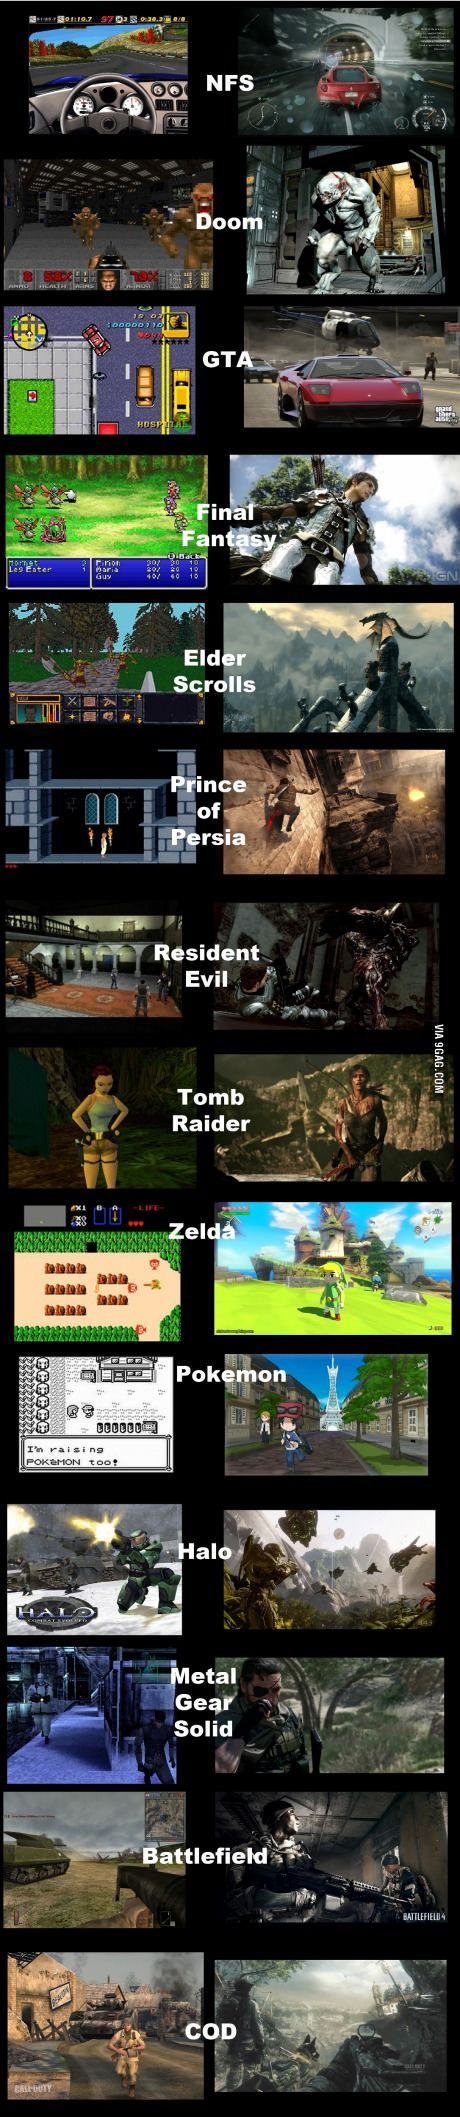 Through Years Evolution Of Video Games Video Games Video Game Memes